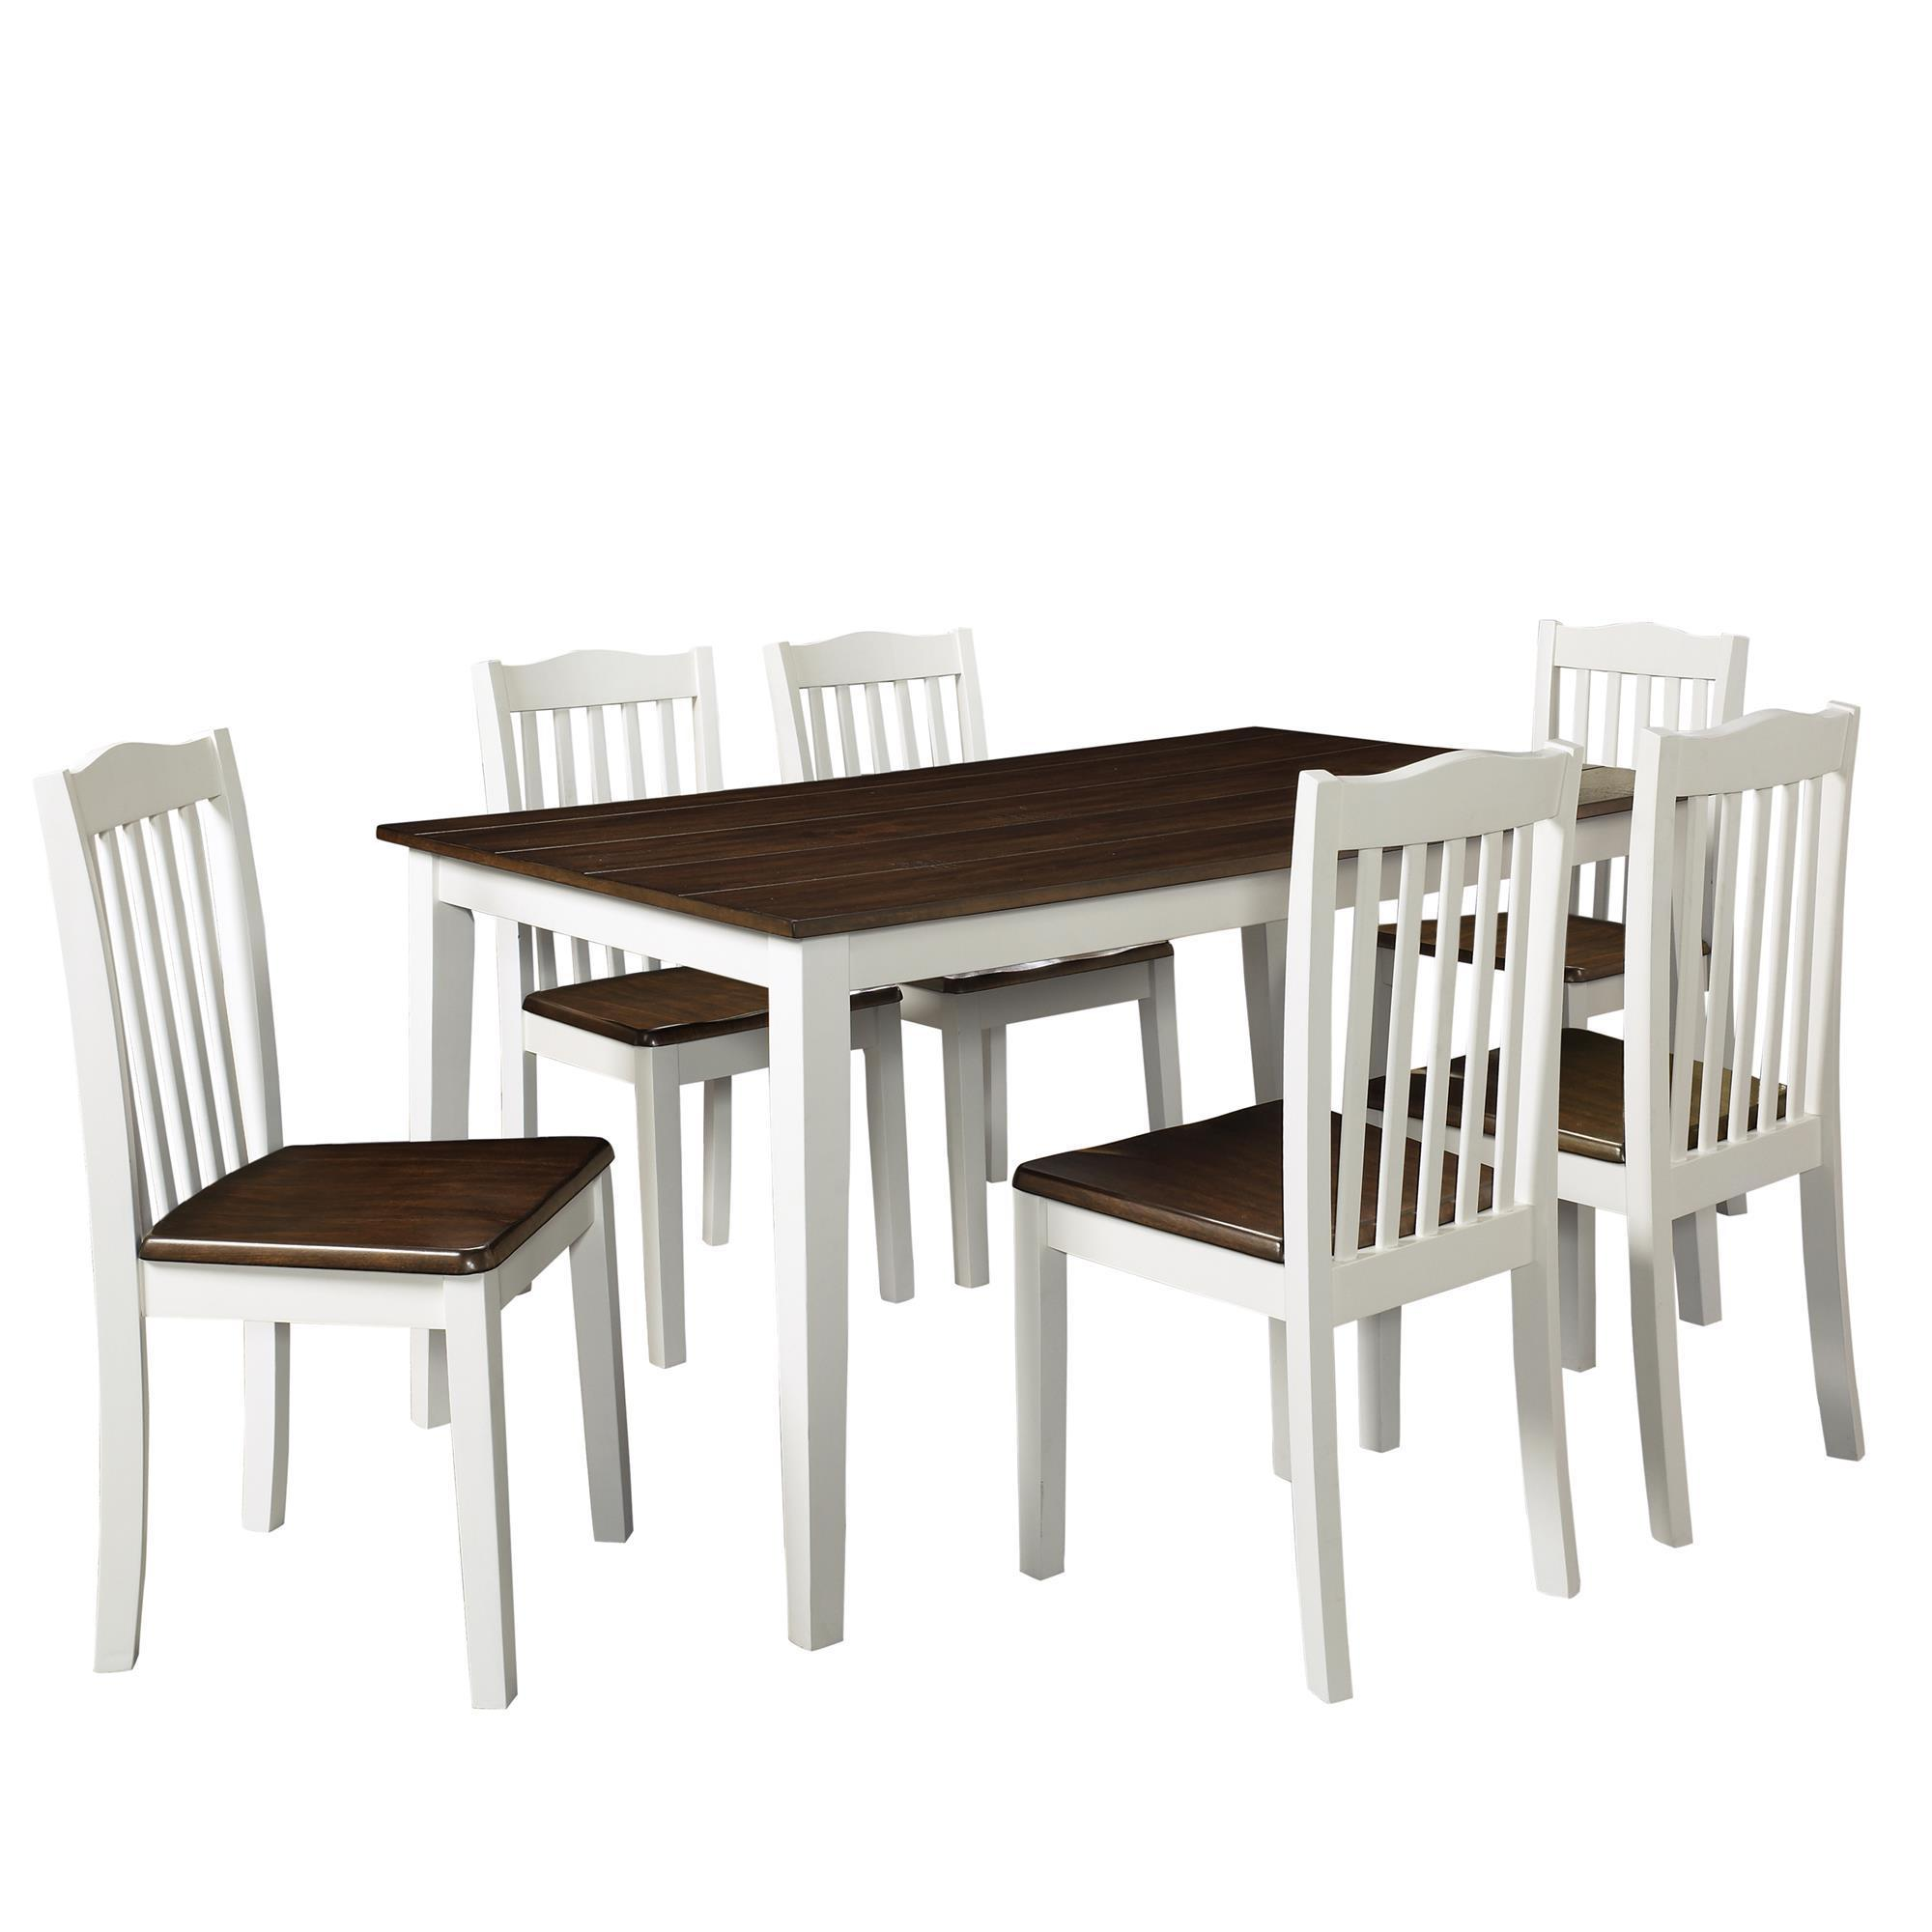 Shop Dorel Living Shiloh 5-Piece Rustic Dining Set - Free Shipping ...